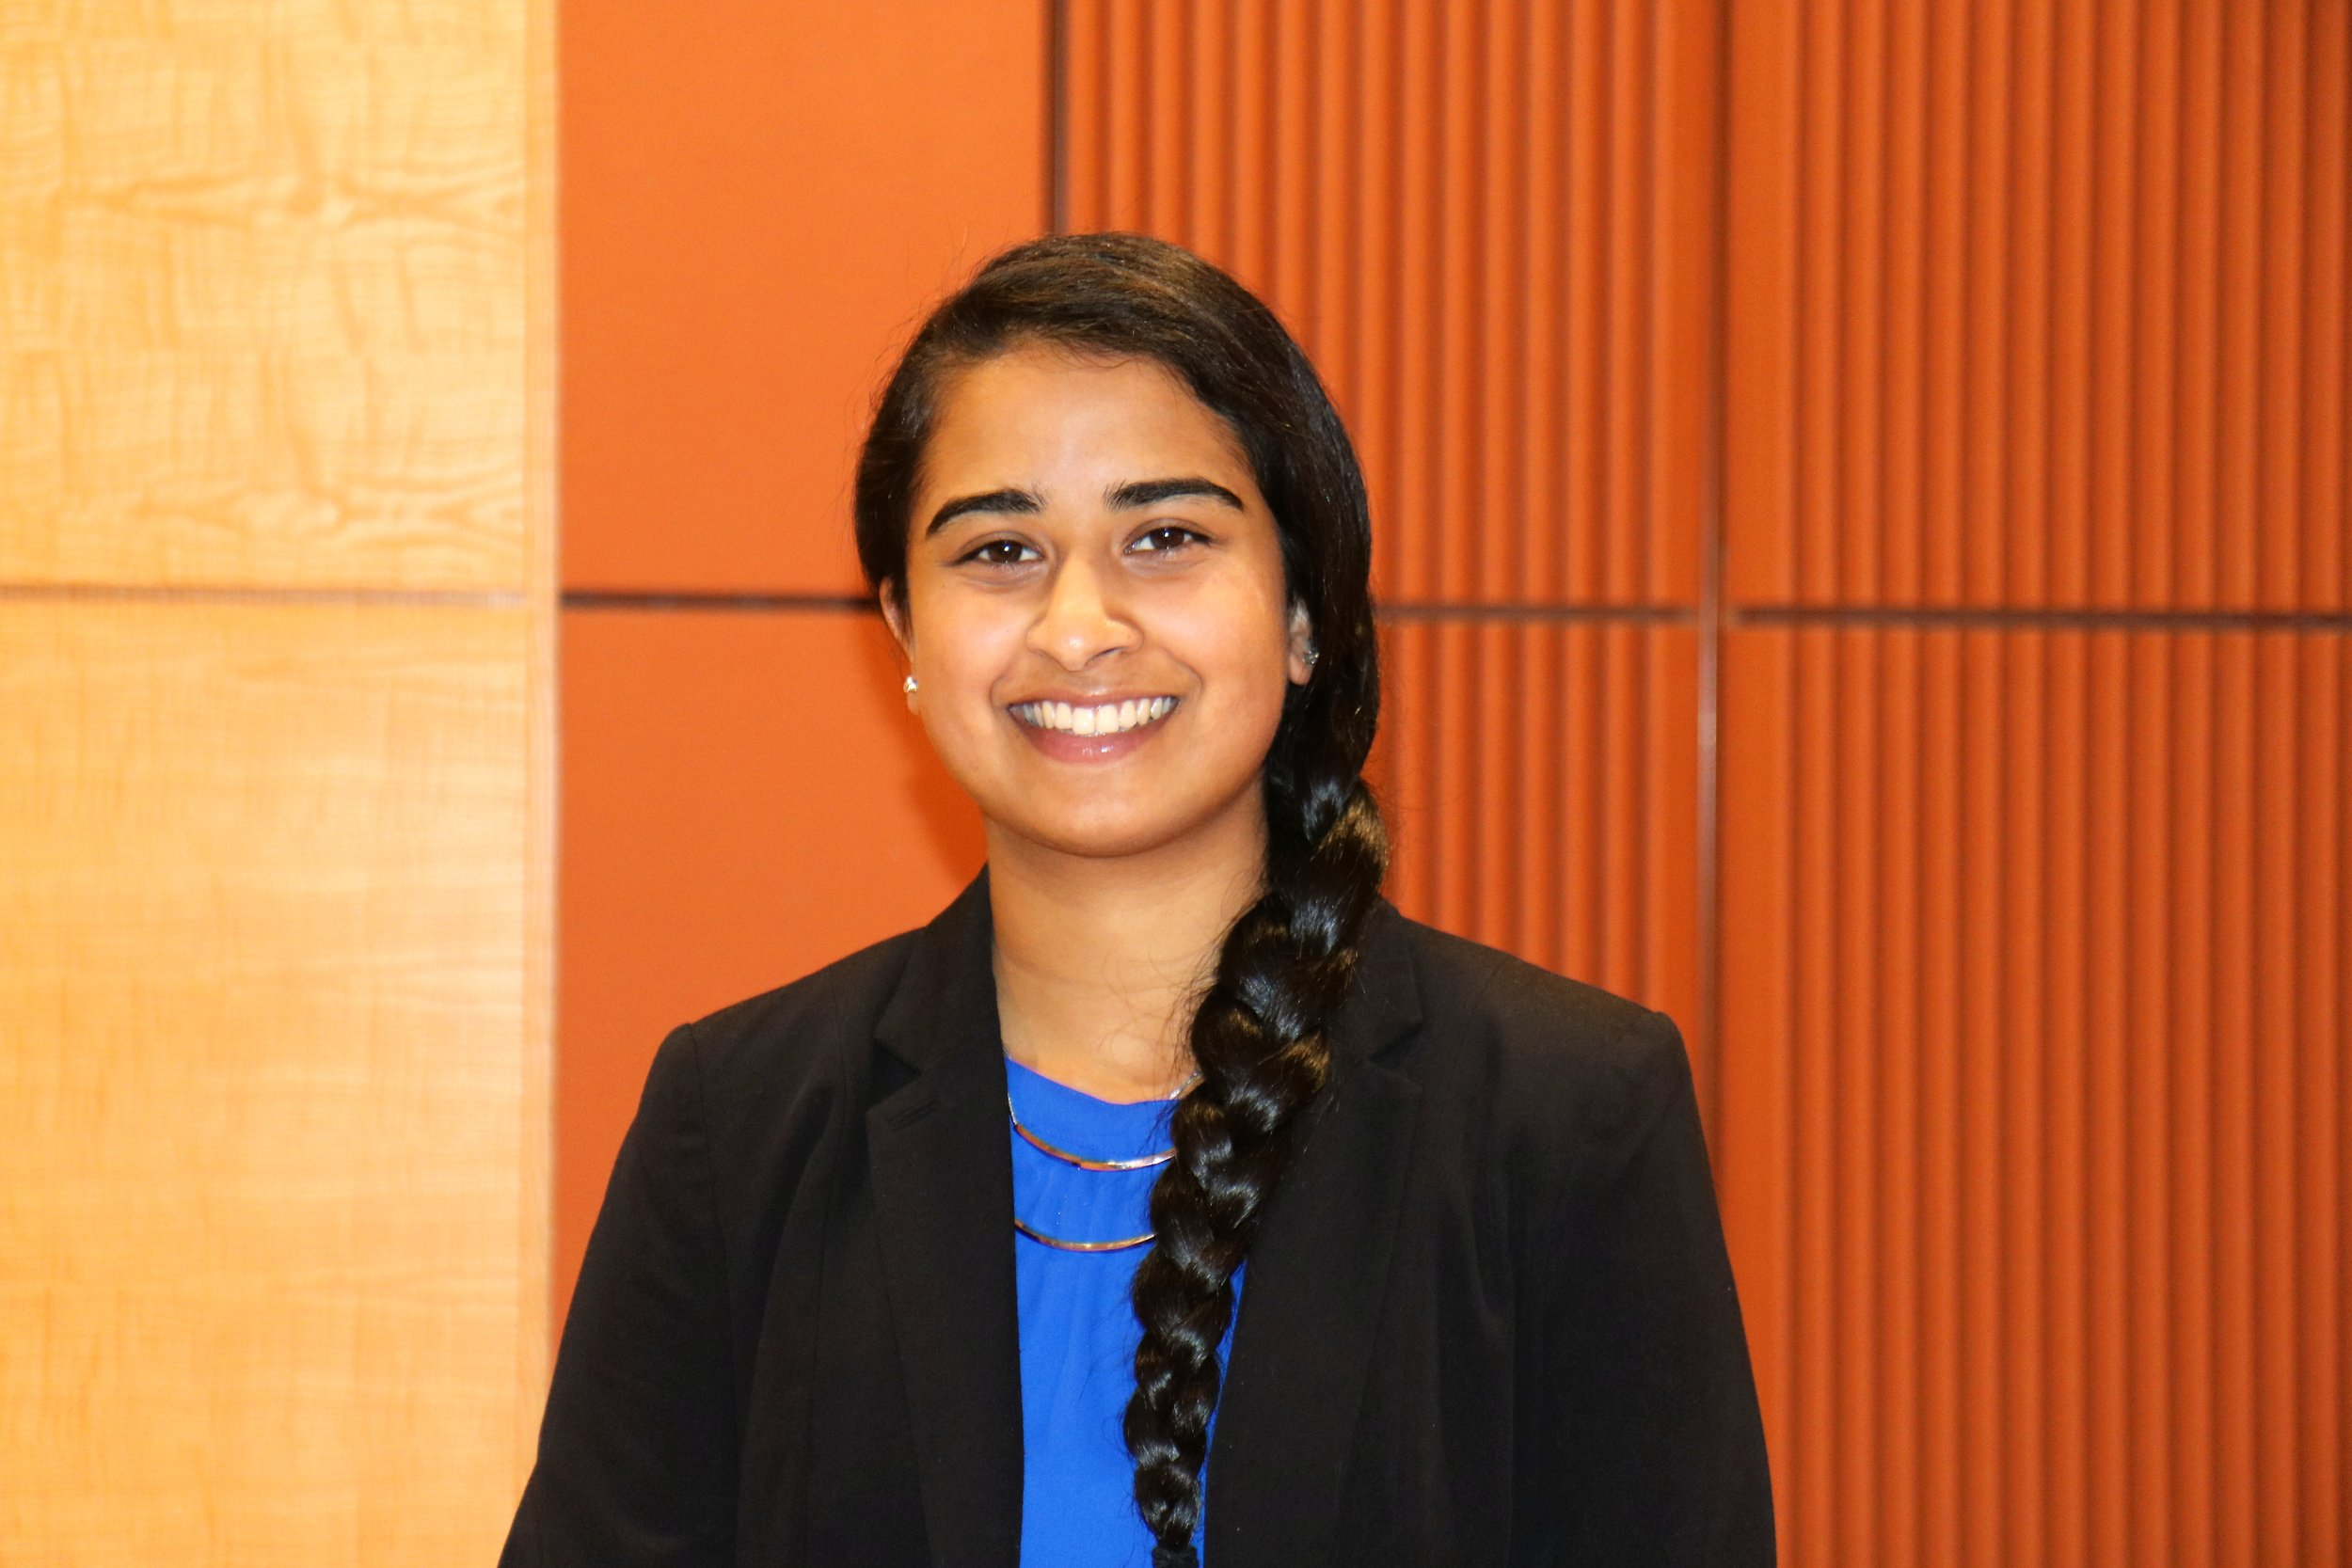 Meghana Nyalakonda - VP of Recruitmentmeghana@detroitden.comLinkedInRandom Fact: I've watched all 445 episodes of Law and Order SVU at least twiceOnly eat one thing for the rest of your life: Bubble tea without a doubtBusiness Advice: Network, network, and network some more